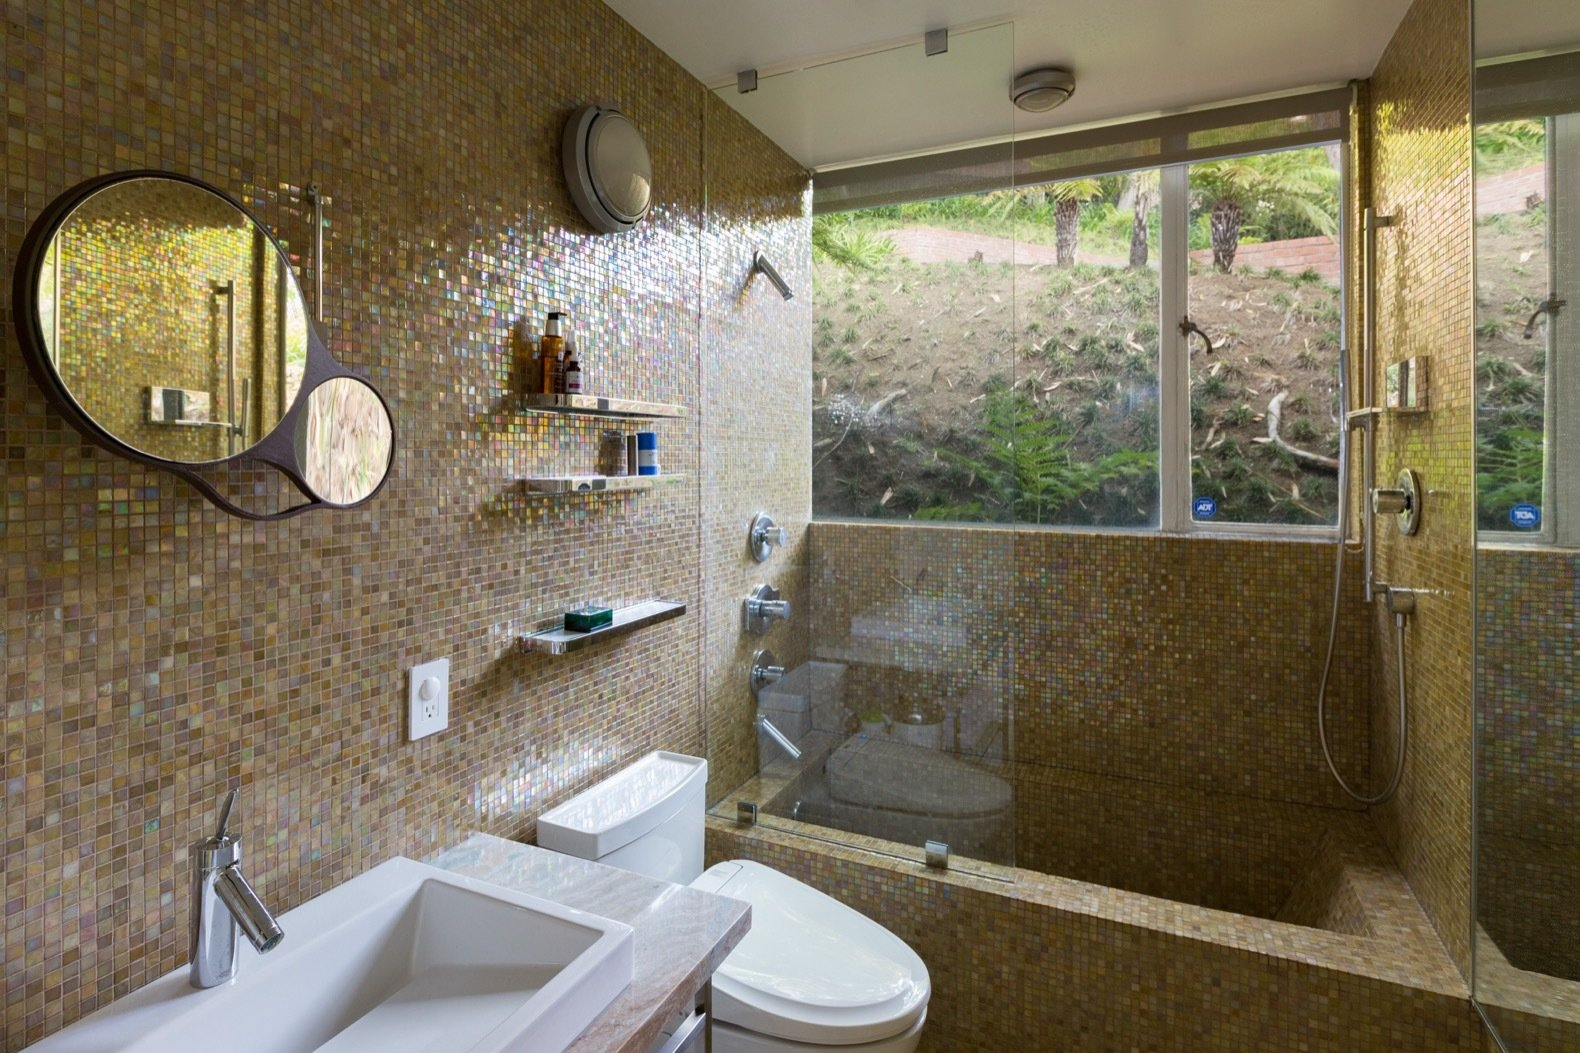 Bath Room, Wall Lighting, Ceiling Lighting, Drop In Sink, Soaking Tub, Mosaic Tile Wall, and Two Piece Toilet Colored tiles line the bathroom, which is set deep into the slope.    Photo 11 of 15 in Calling All Richard Neutra Fans—His Bonnet House in L.A. Hits the Market at $1.8M